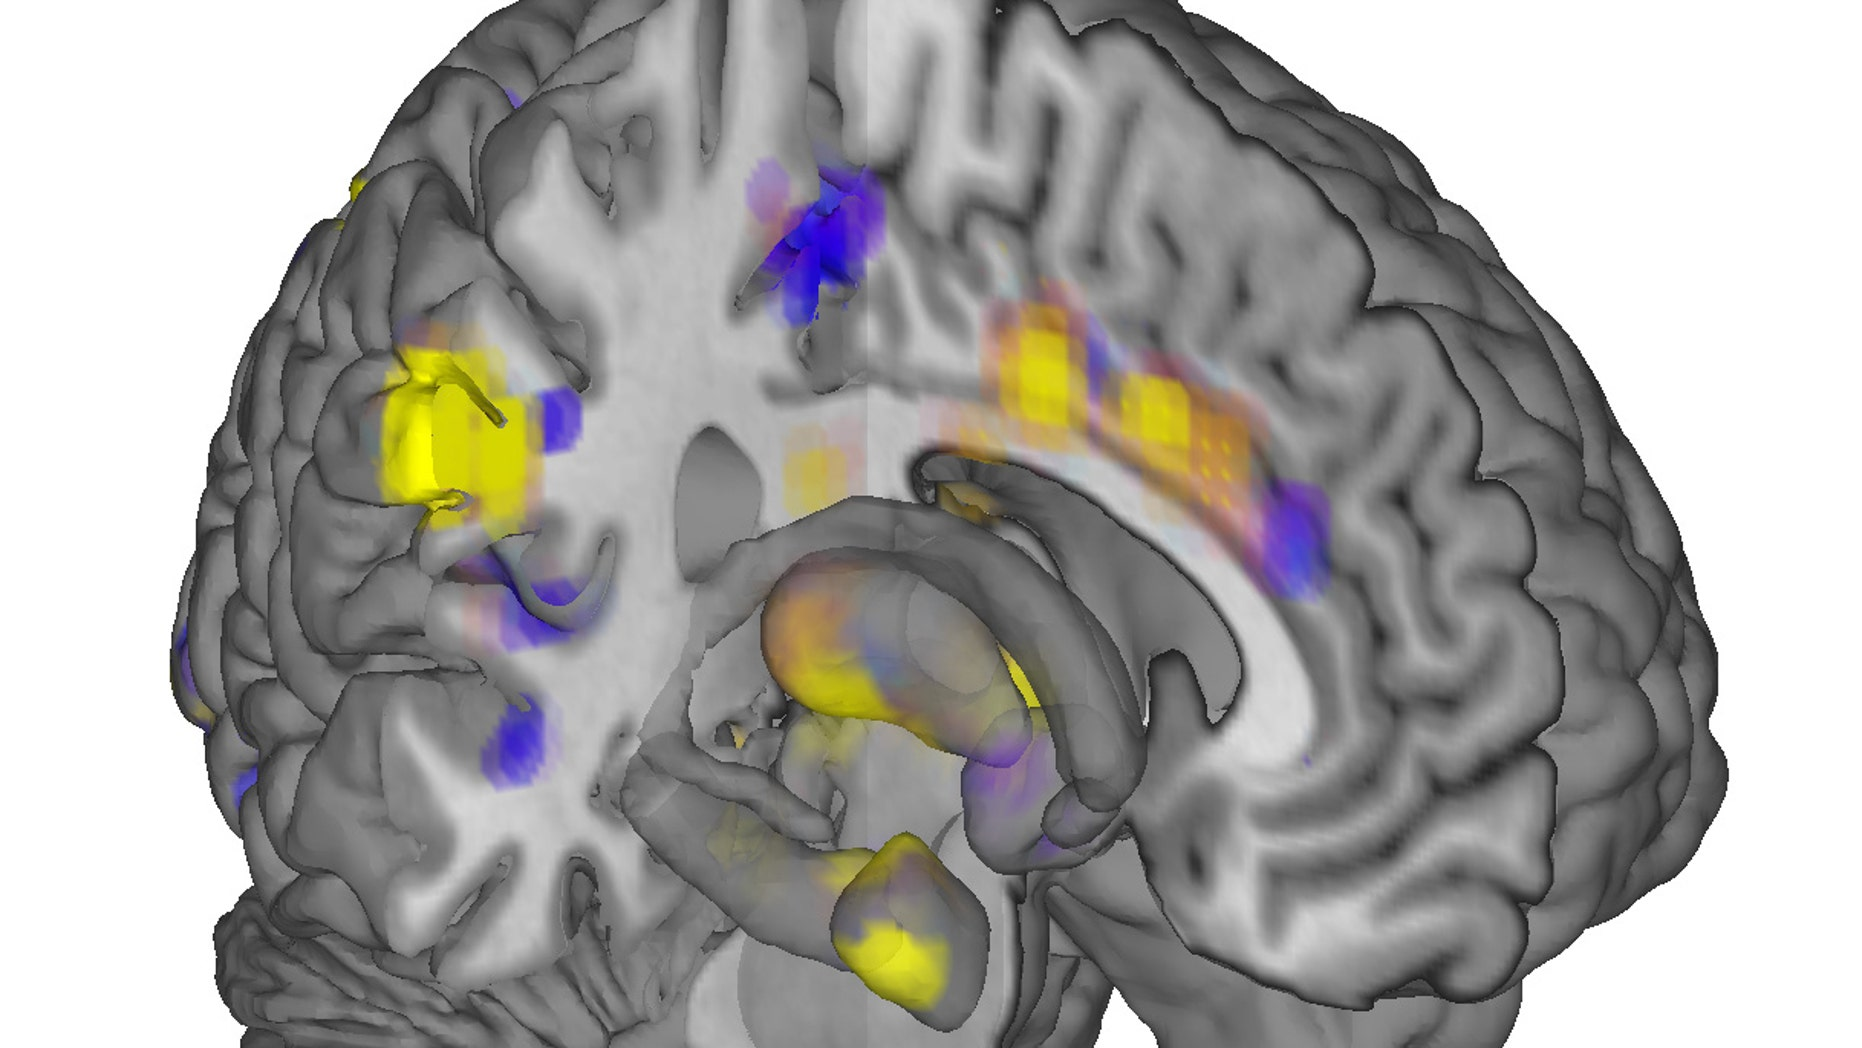 Activity in yellow-colored areas is predictive of higher levels of pain, and activity in blue-colored areas is predictive of lower levels of pain.  (AP Photo/University of Colorado, Boulder, Tor Wager)